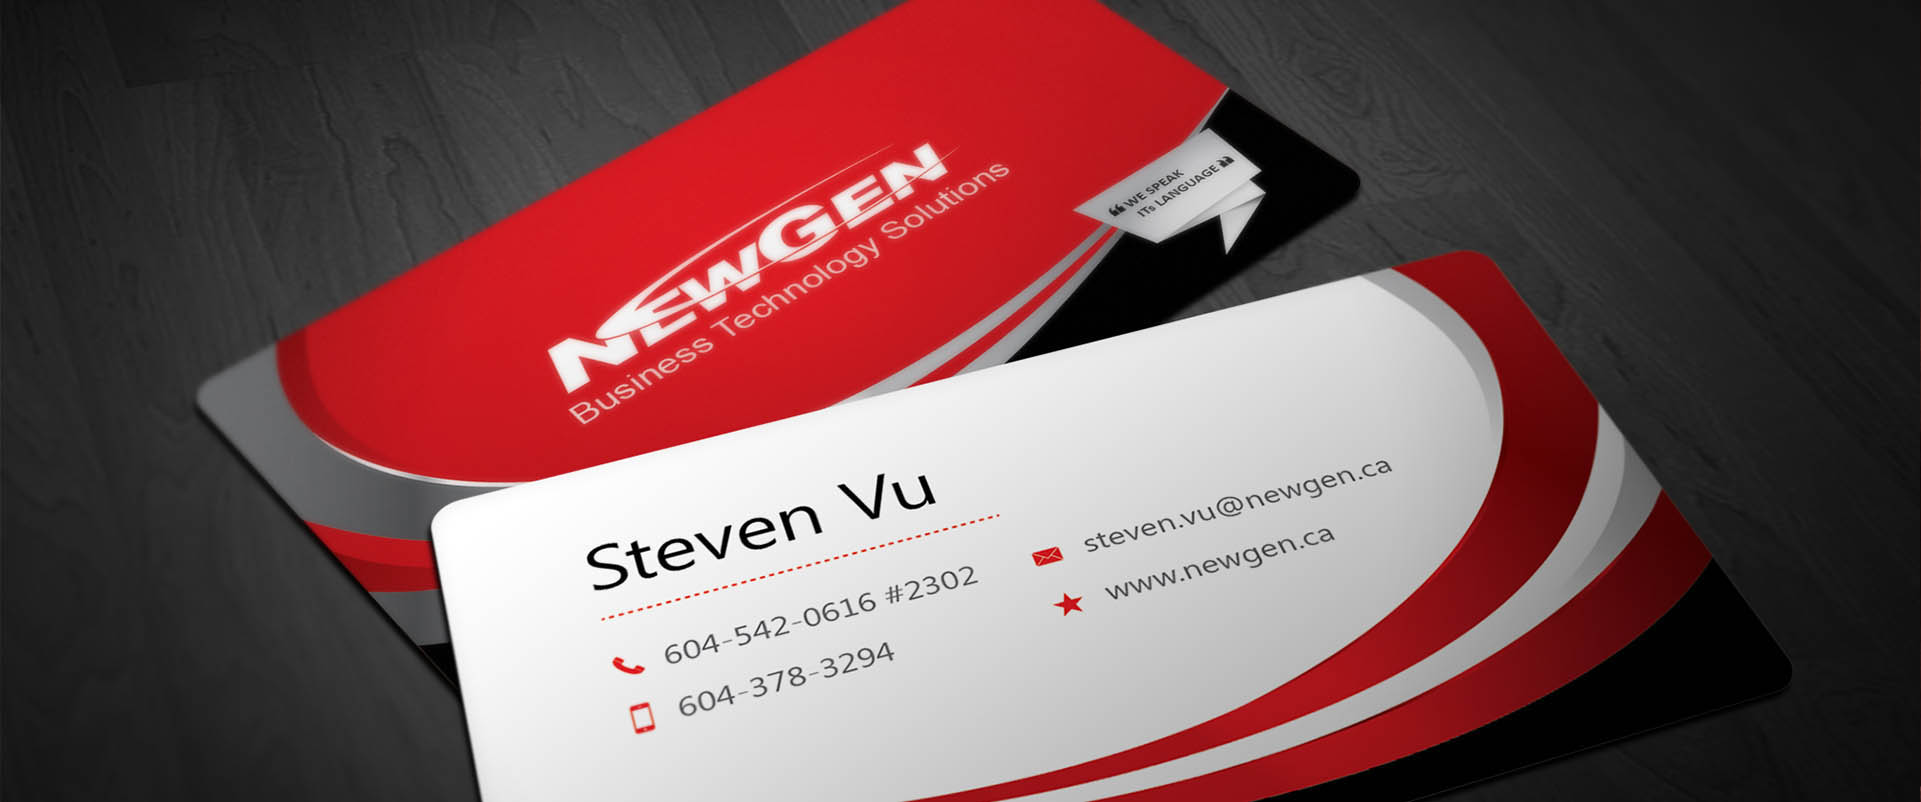 standard business card double tap to zoom - Standard Business Card